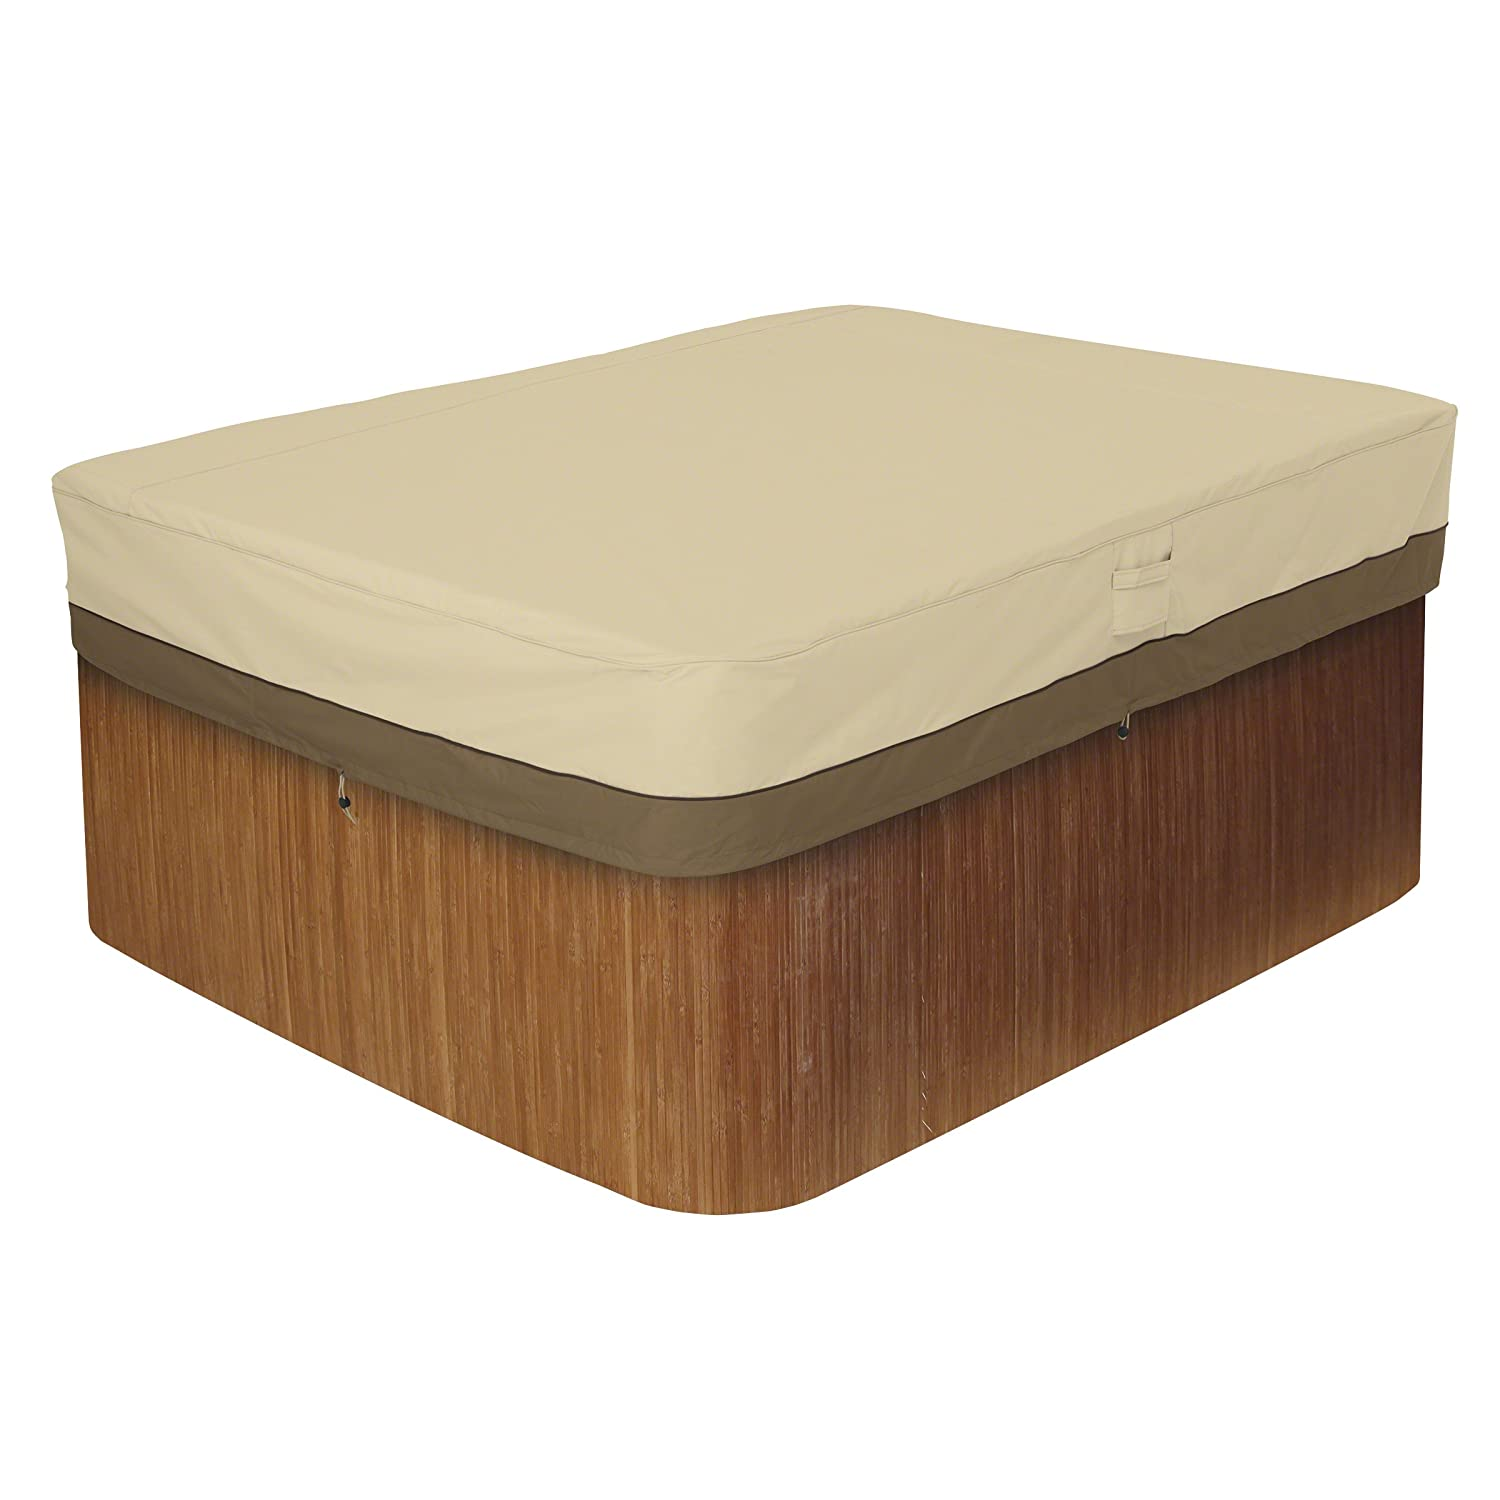 Veranda Rectangular Hot Tub Cover